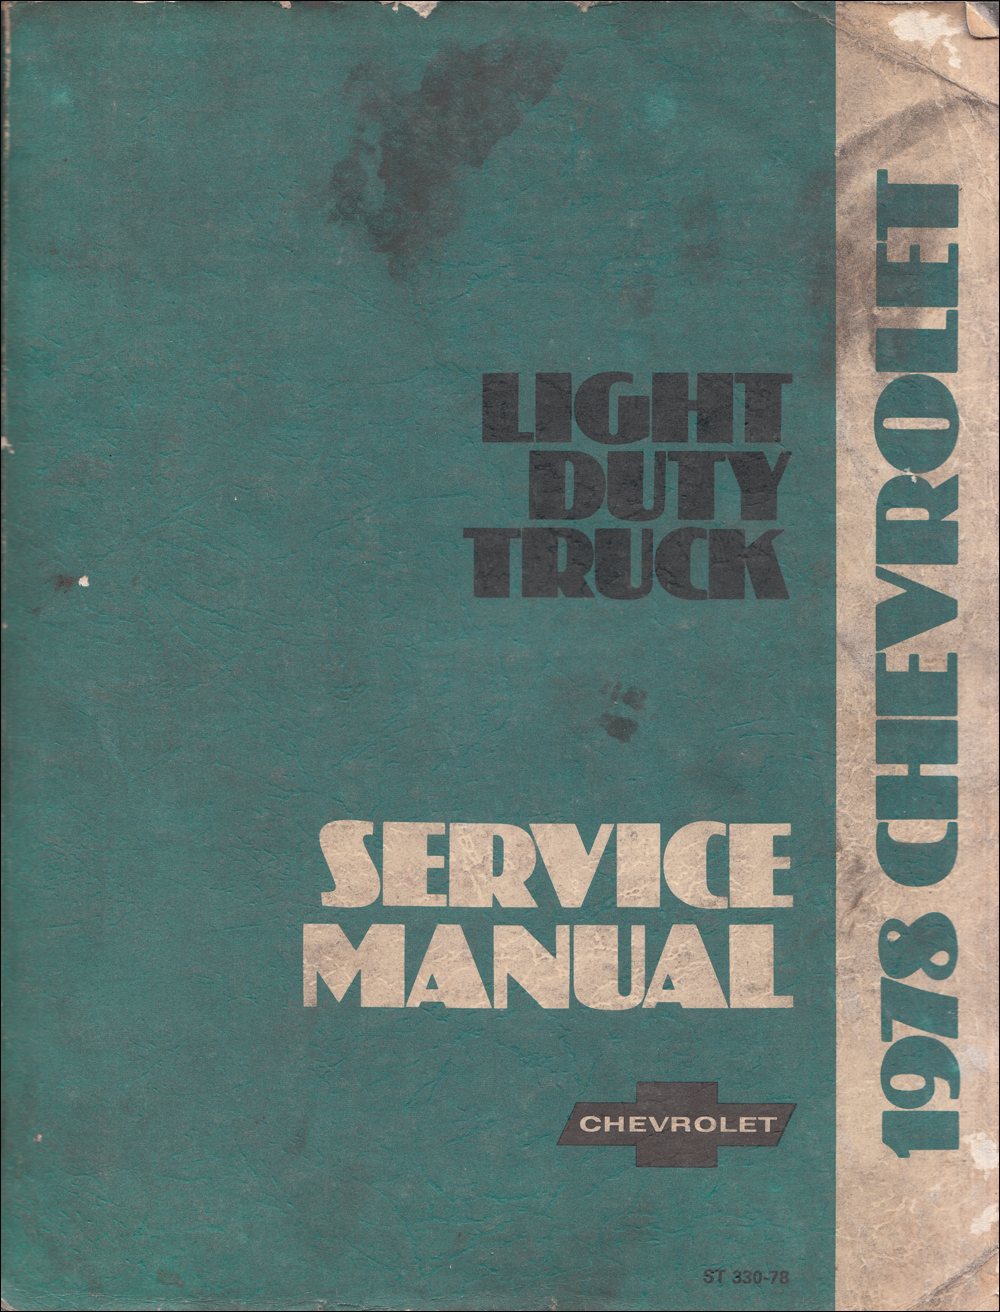 Controller Wiring Diagram Of 1979 Gmc Light Duty Truck Series 10 35